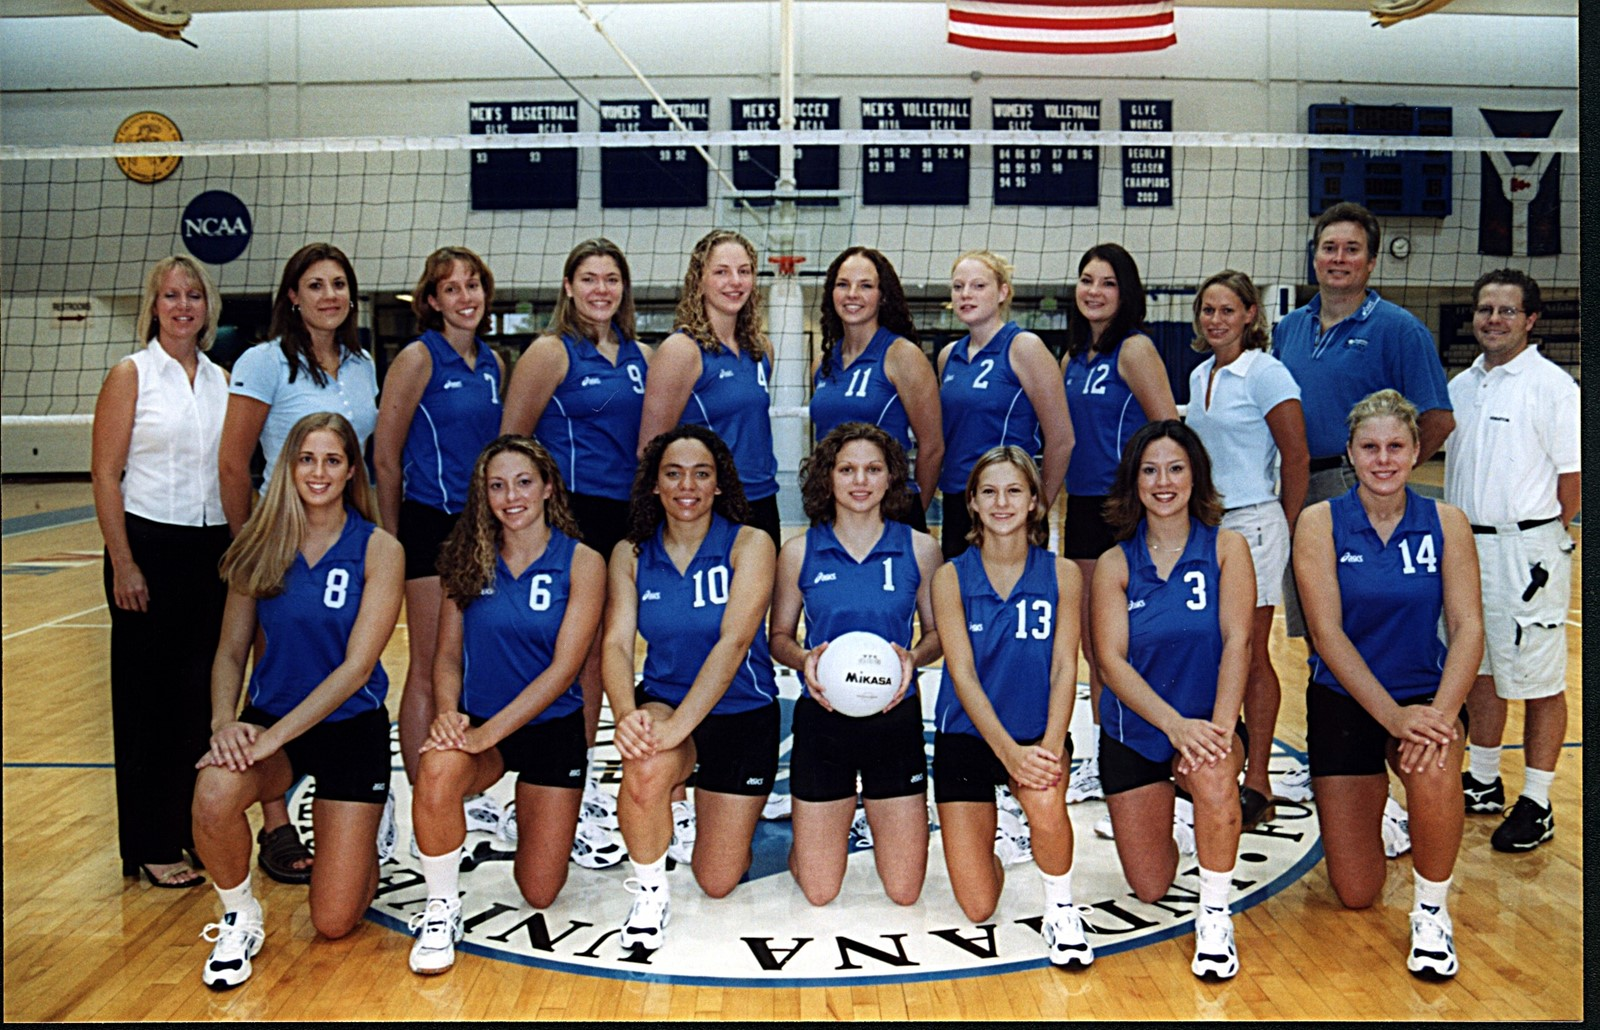 2001 Women S Volleyball Roster Purdue Fort Wayne Athletics